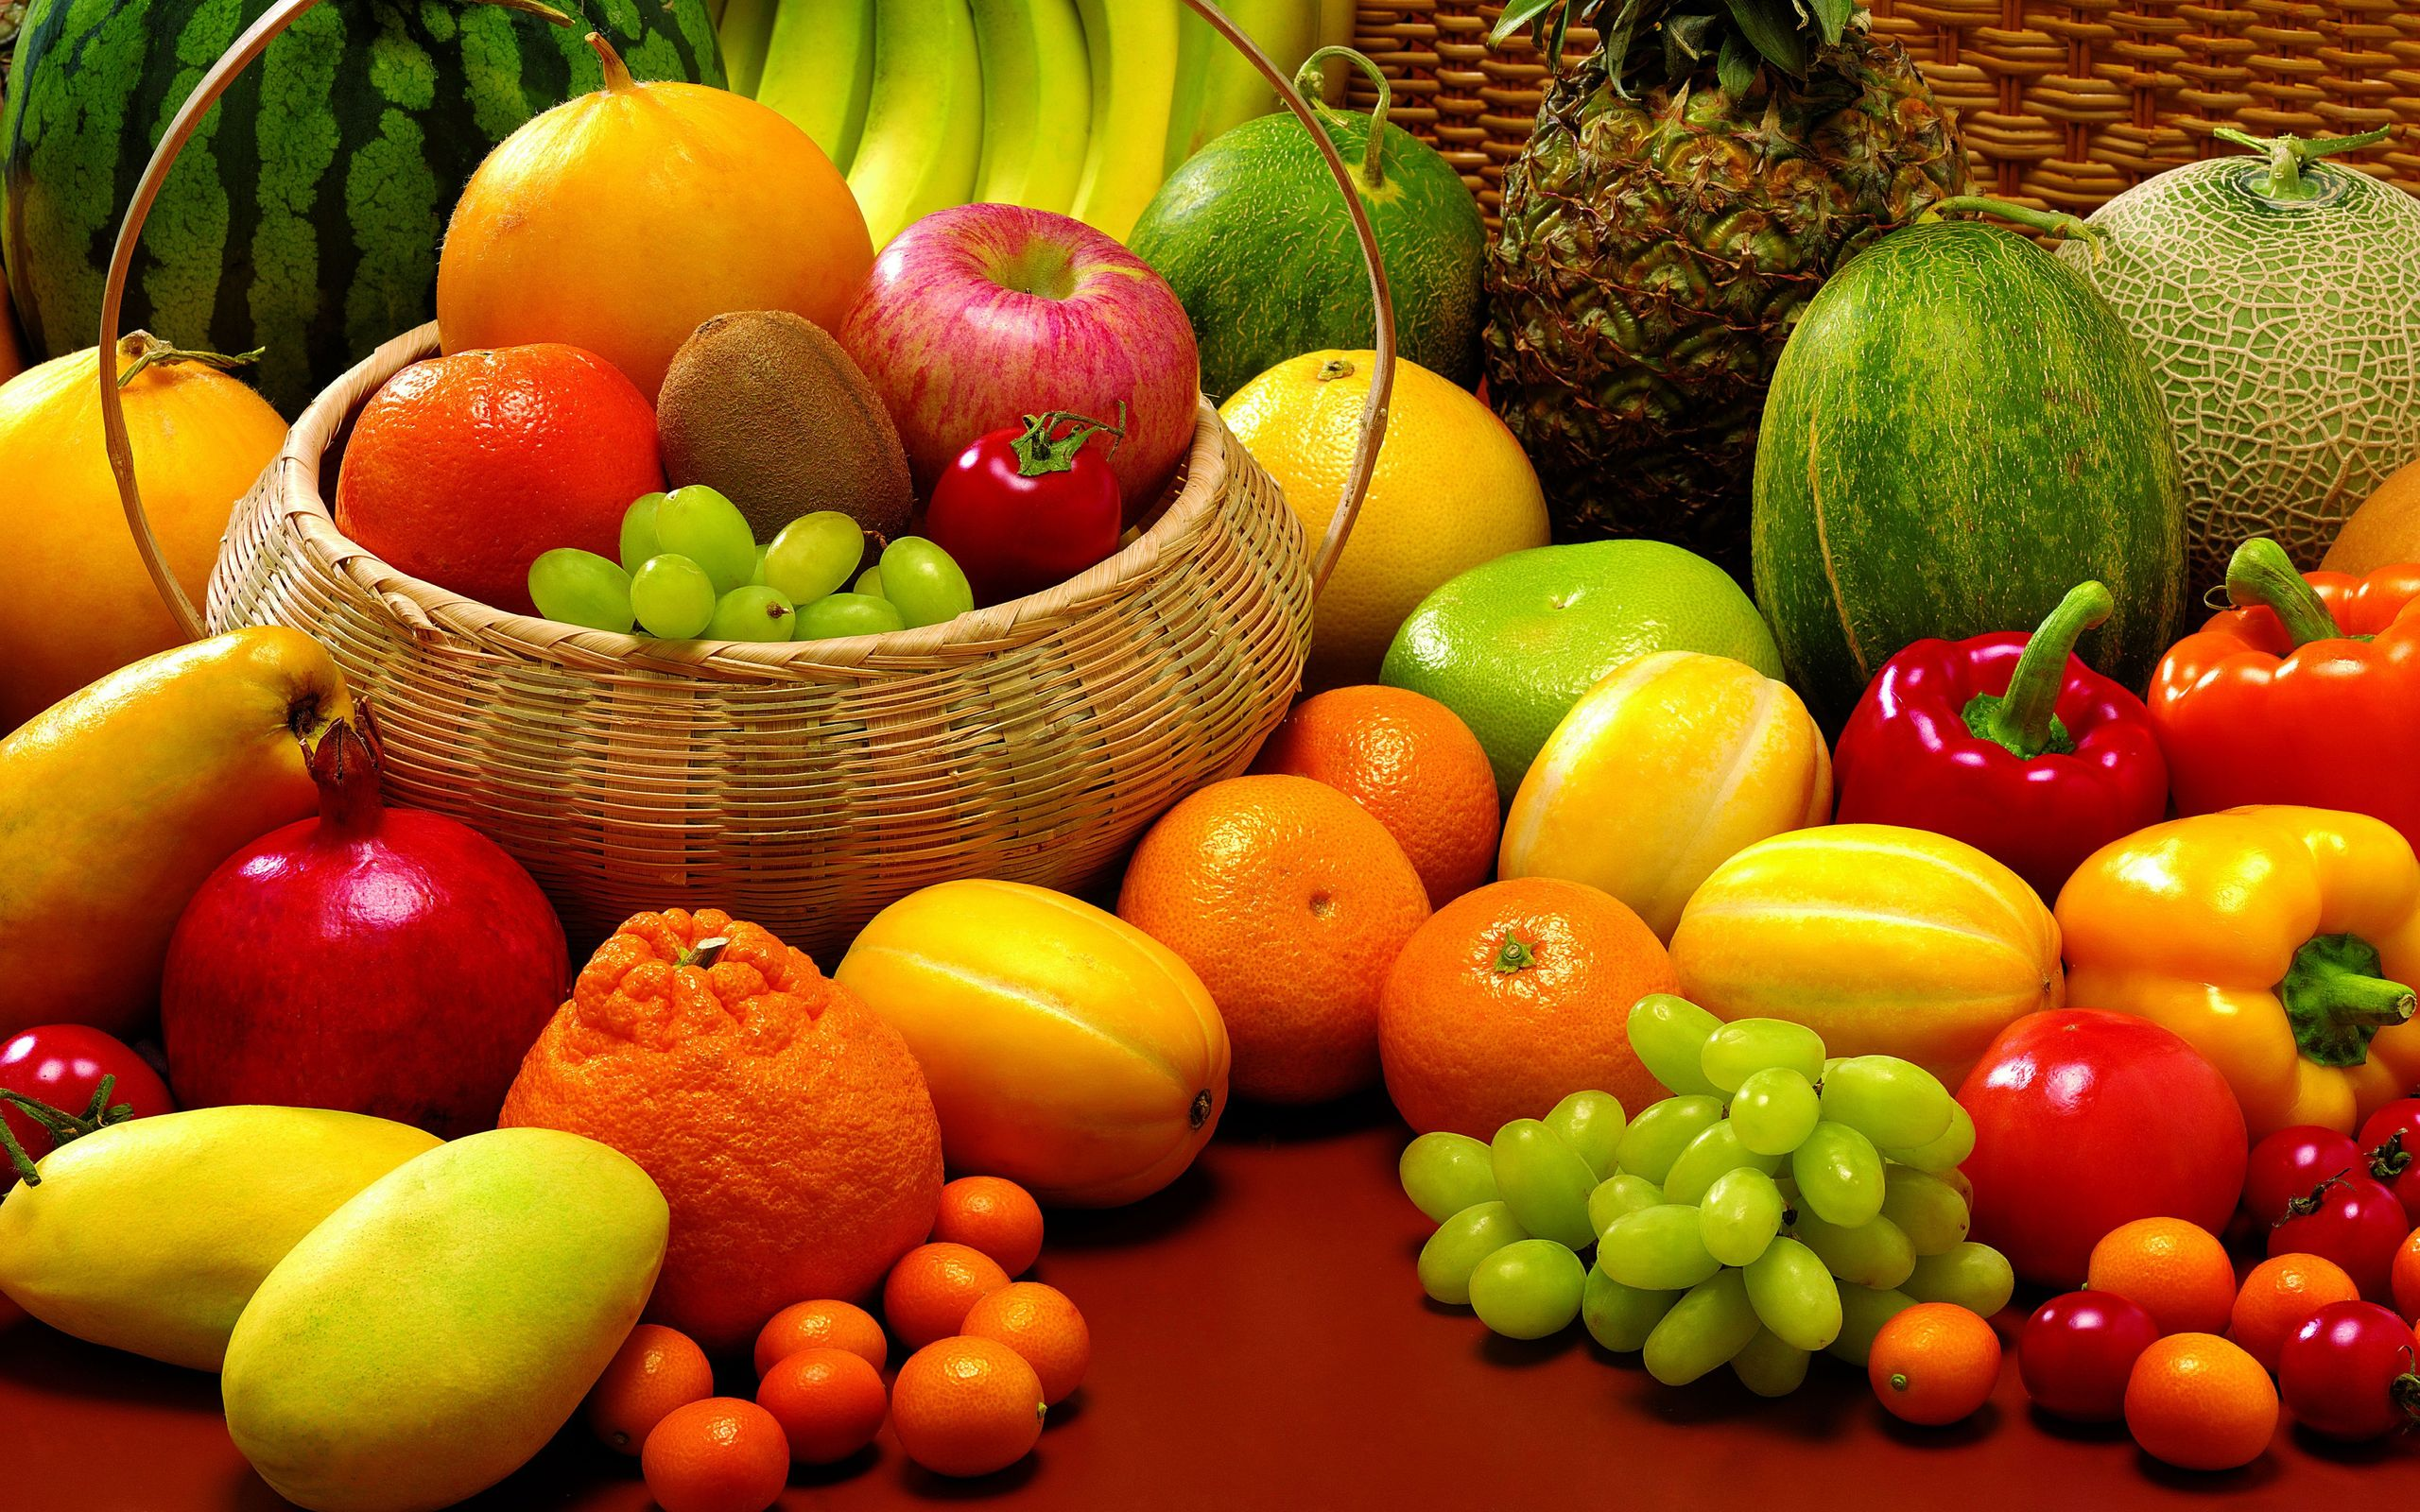 Fruit Fresh Wallpaper HD Photos 2560x1600